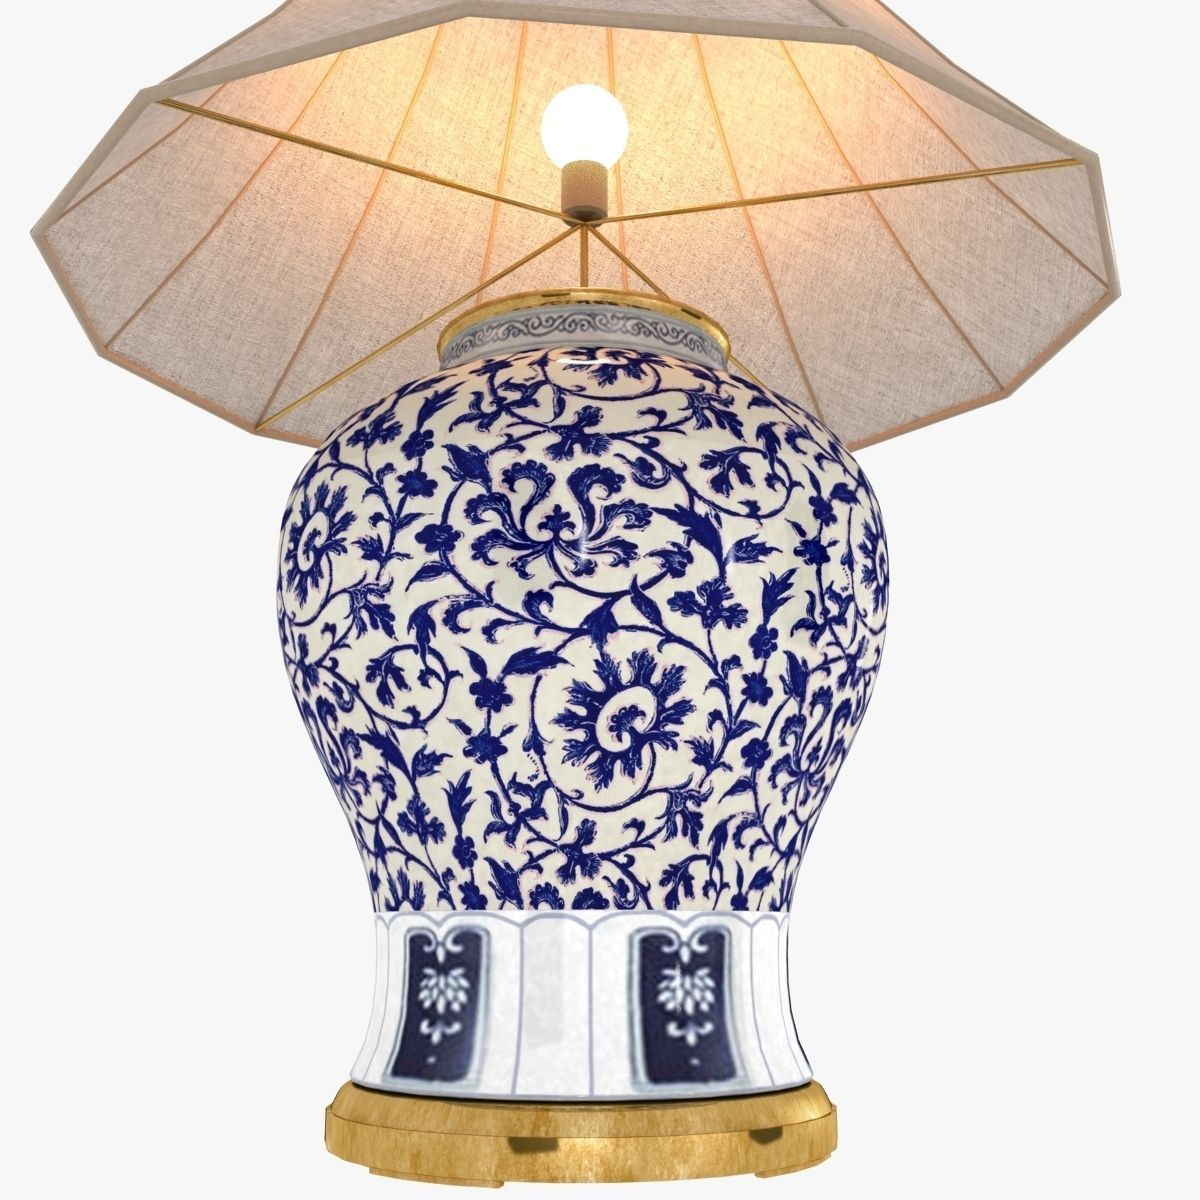 Ralph lauren marlena large table lamp in blue and white 3d model ralph lauren marlena large table lamp in blue and white 3d model max obj 3ds fbx mozeypictures Images